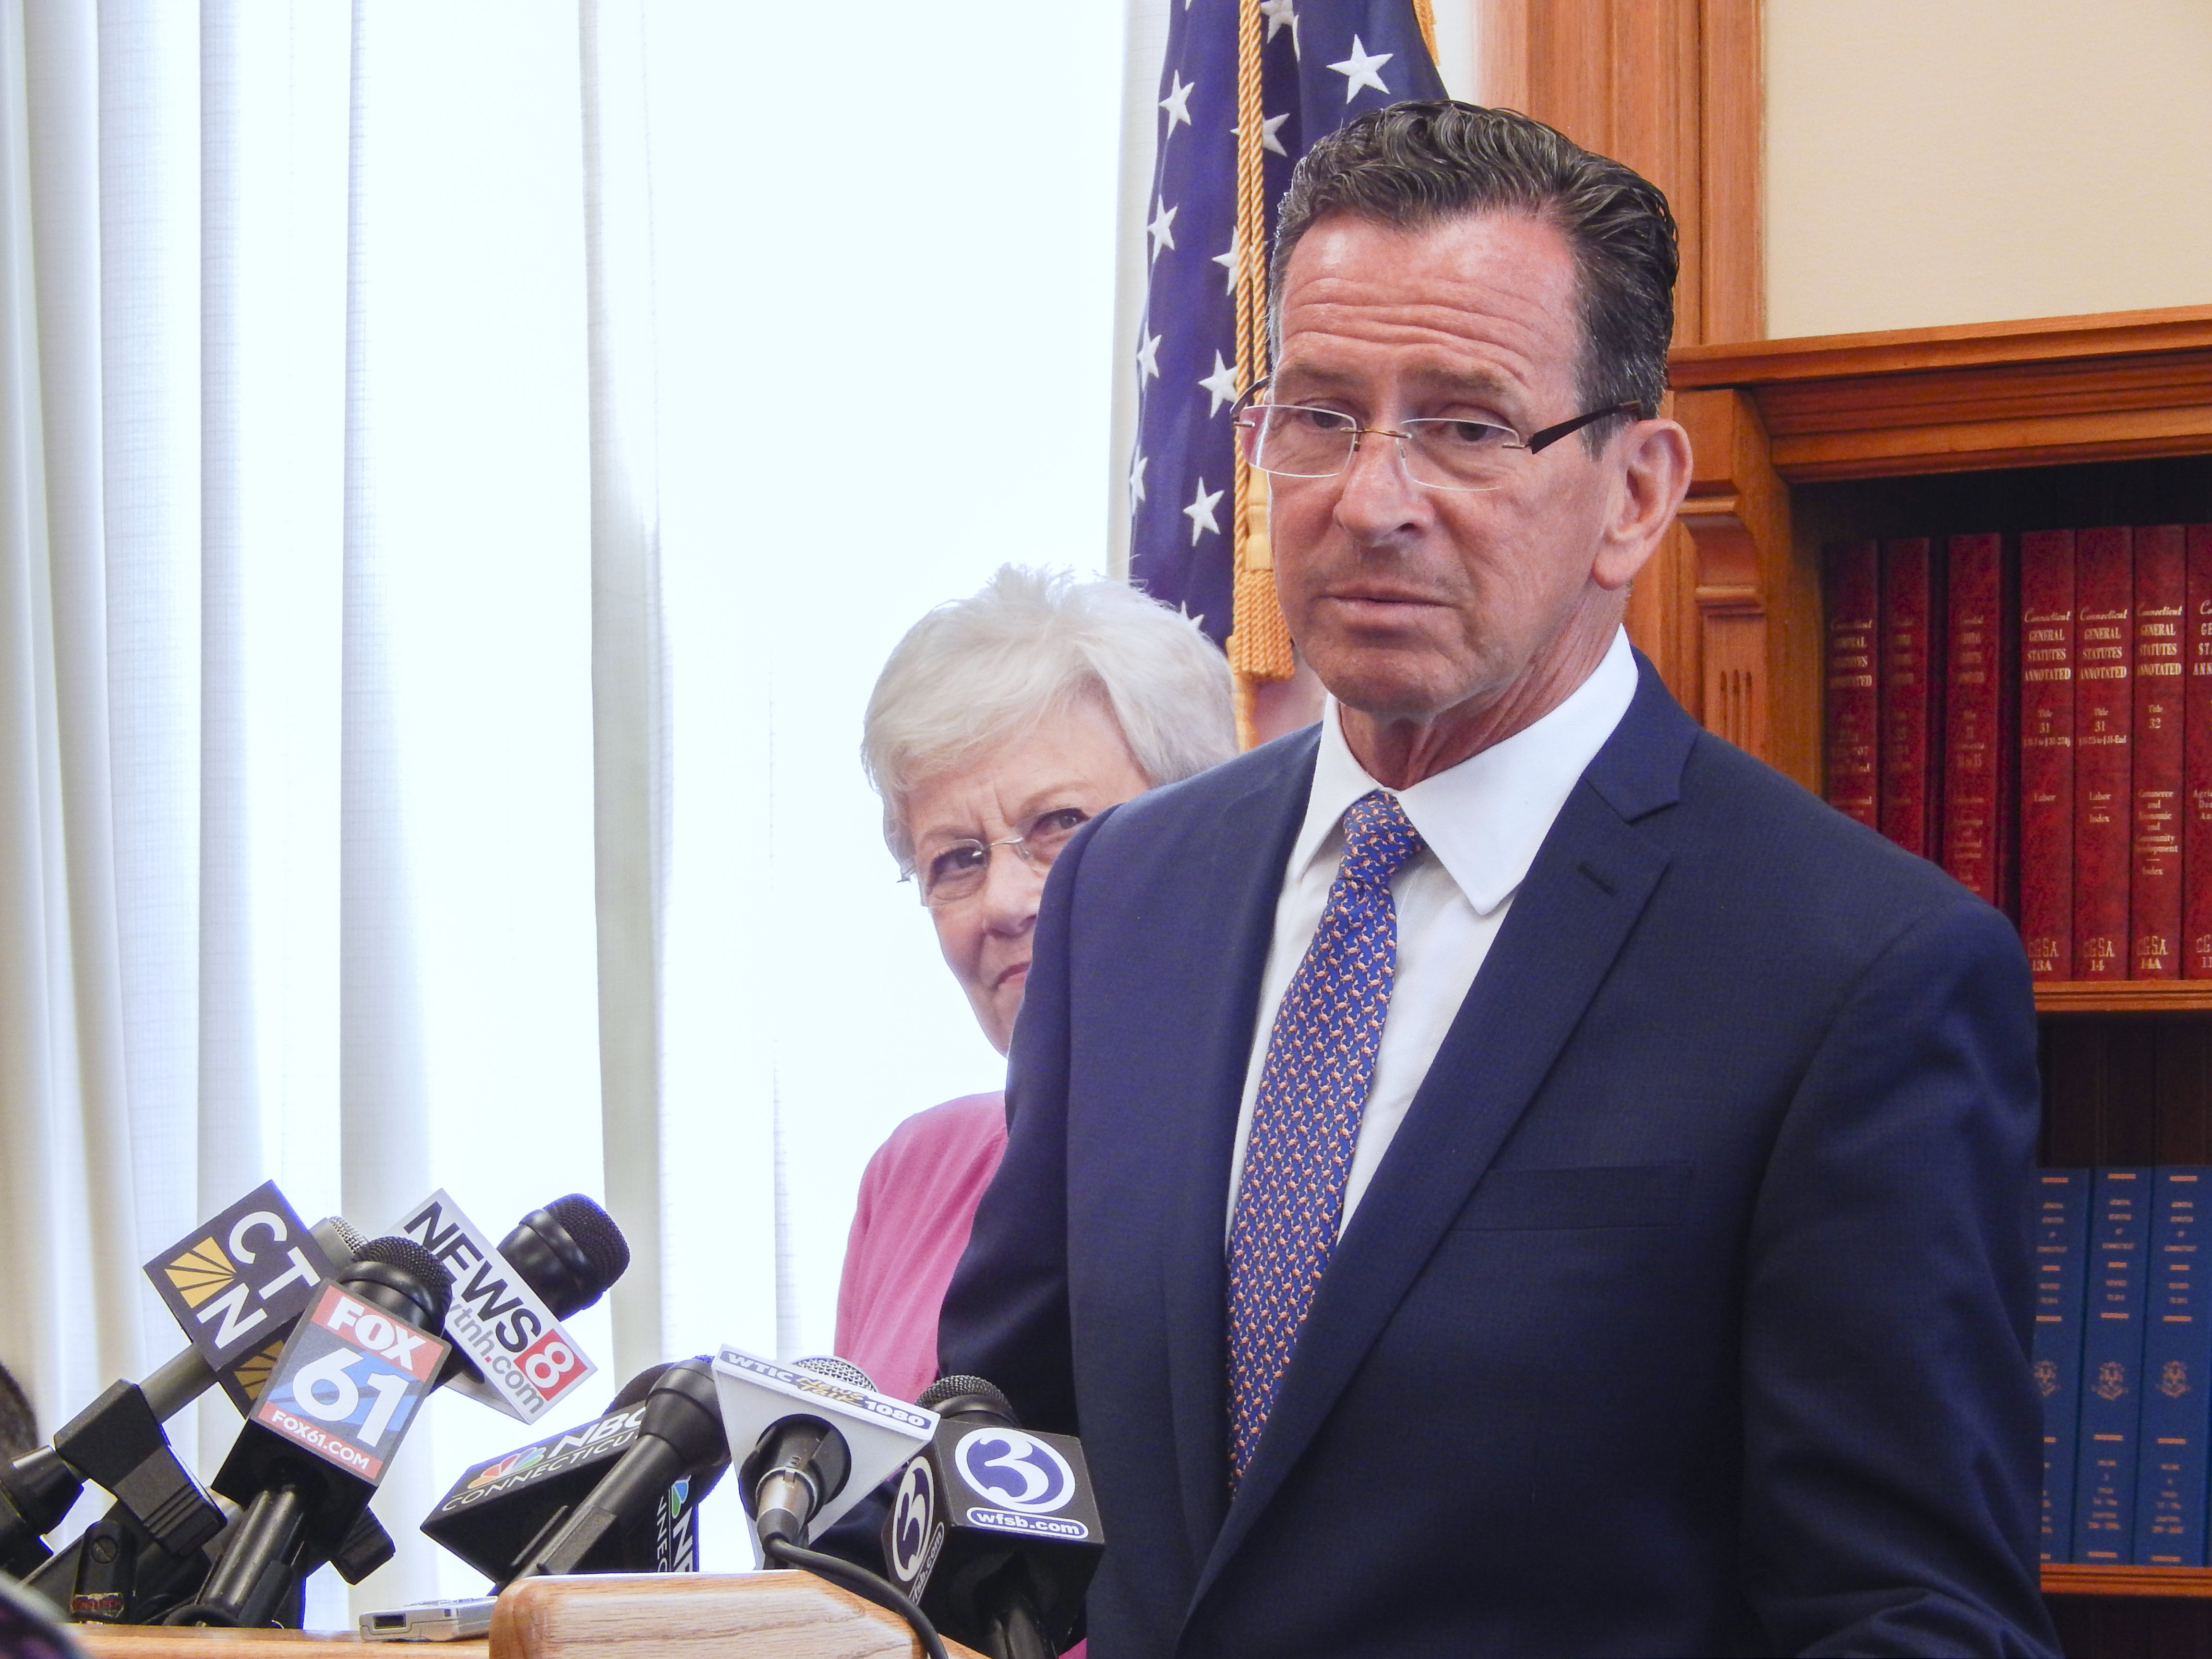 Malloy proposes $300M in new revenue to mitigate cuts during CT budget gridlock